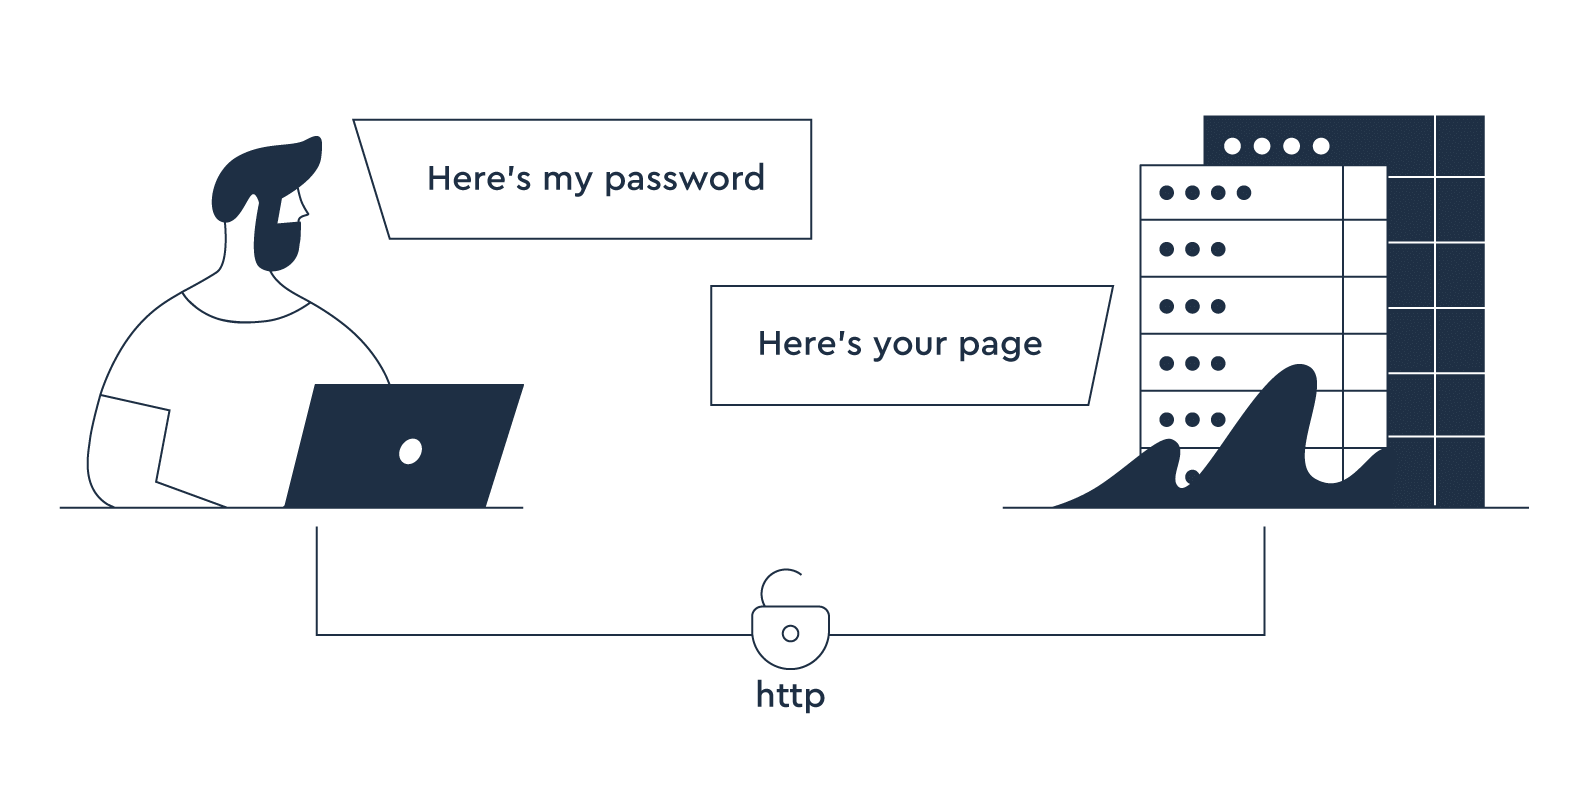 HTTP. Browser: Here's my password, Server: Here's your page